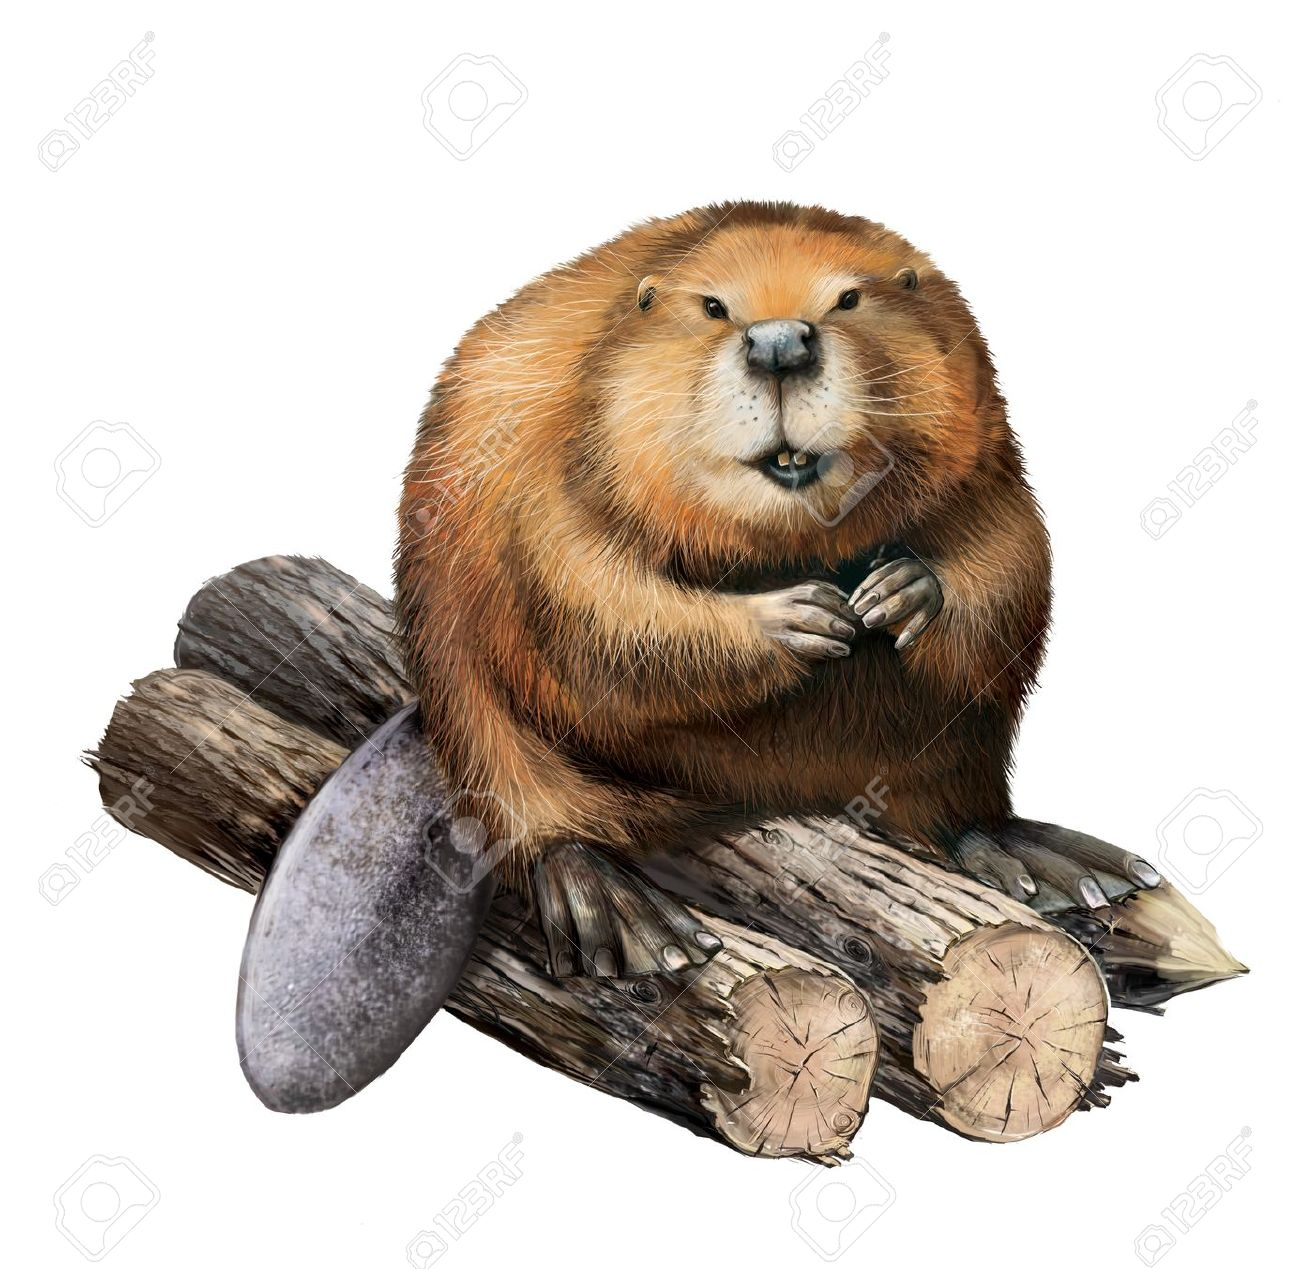 beaverbeliever Avatar